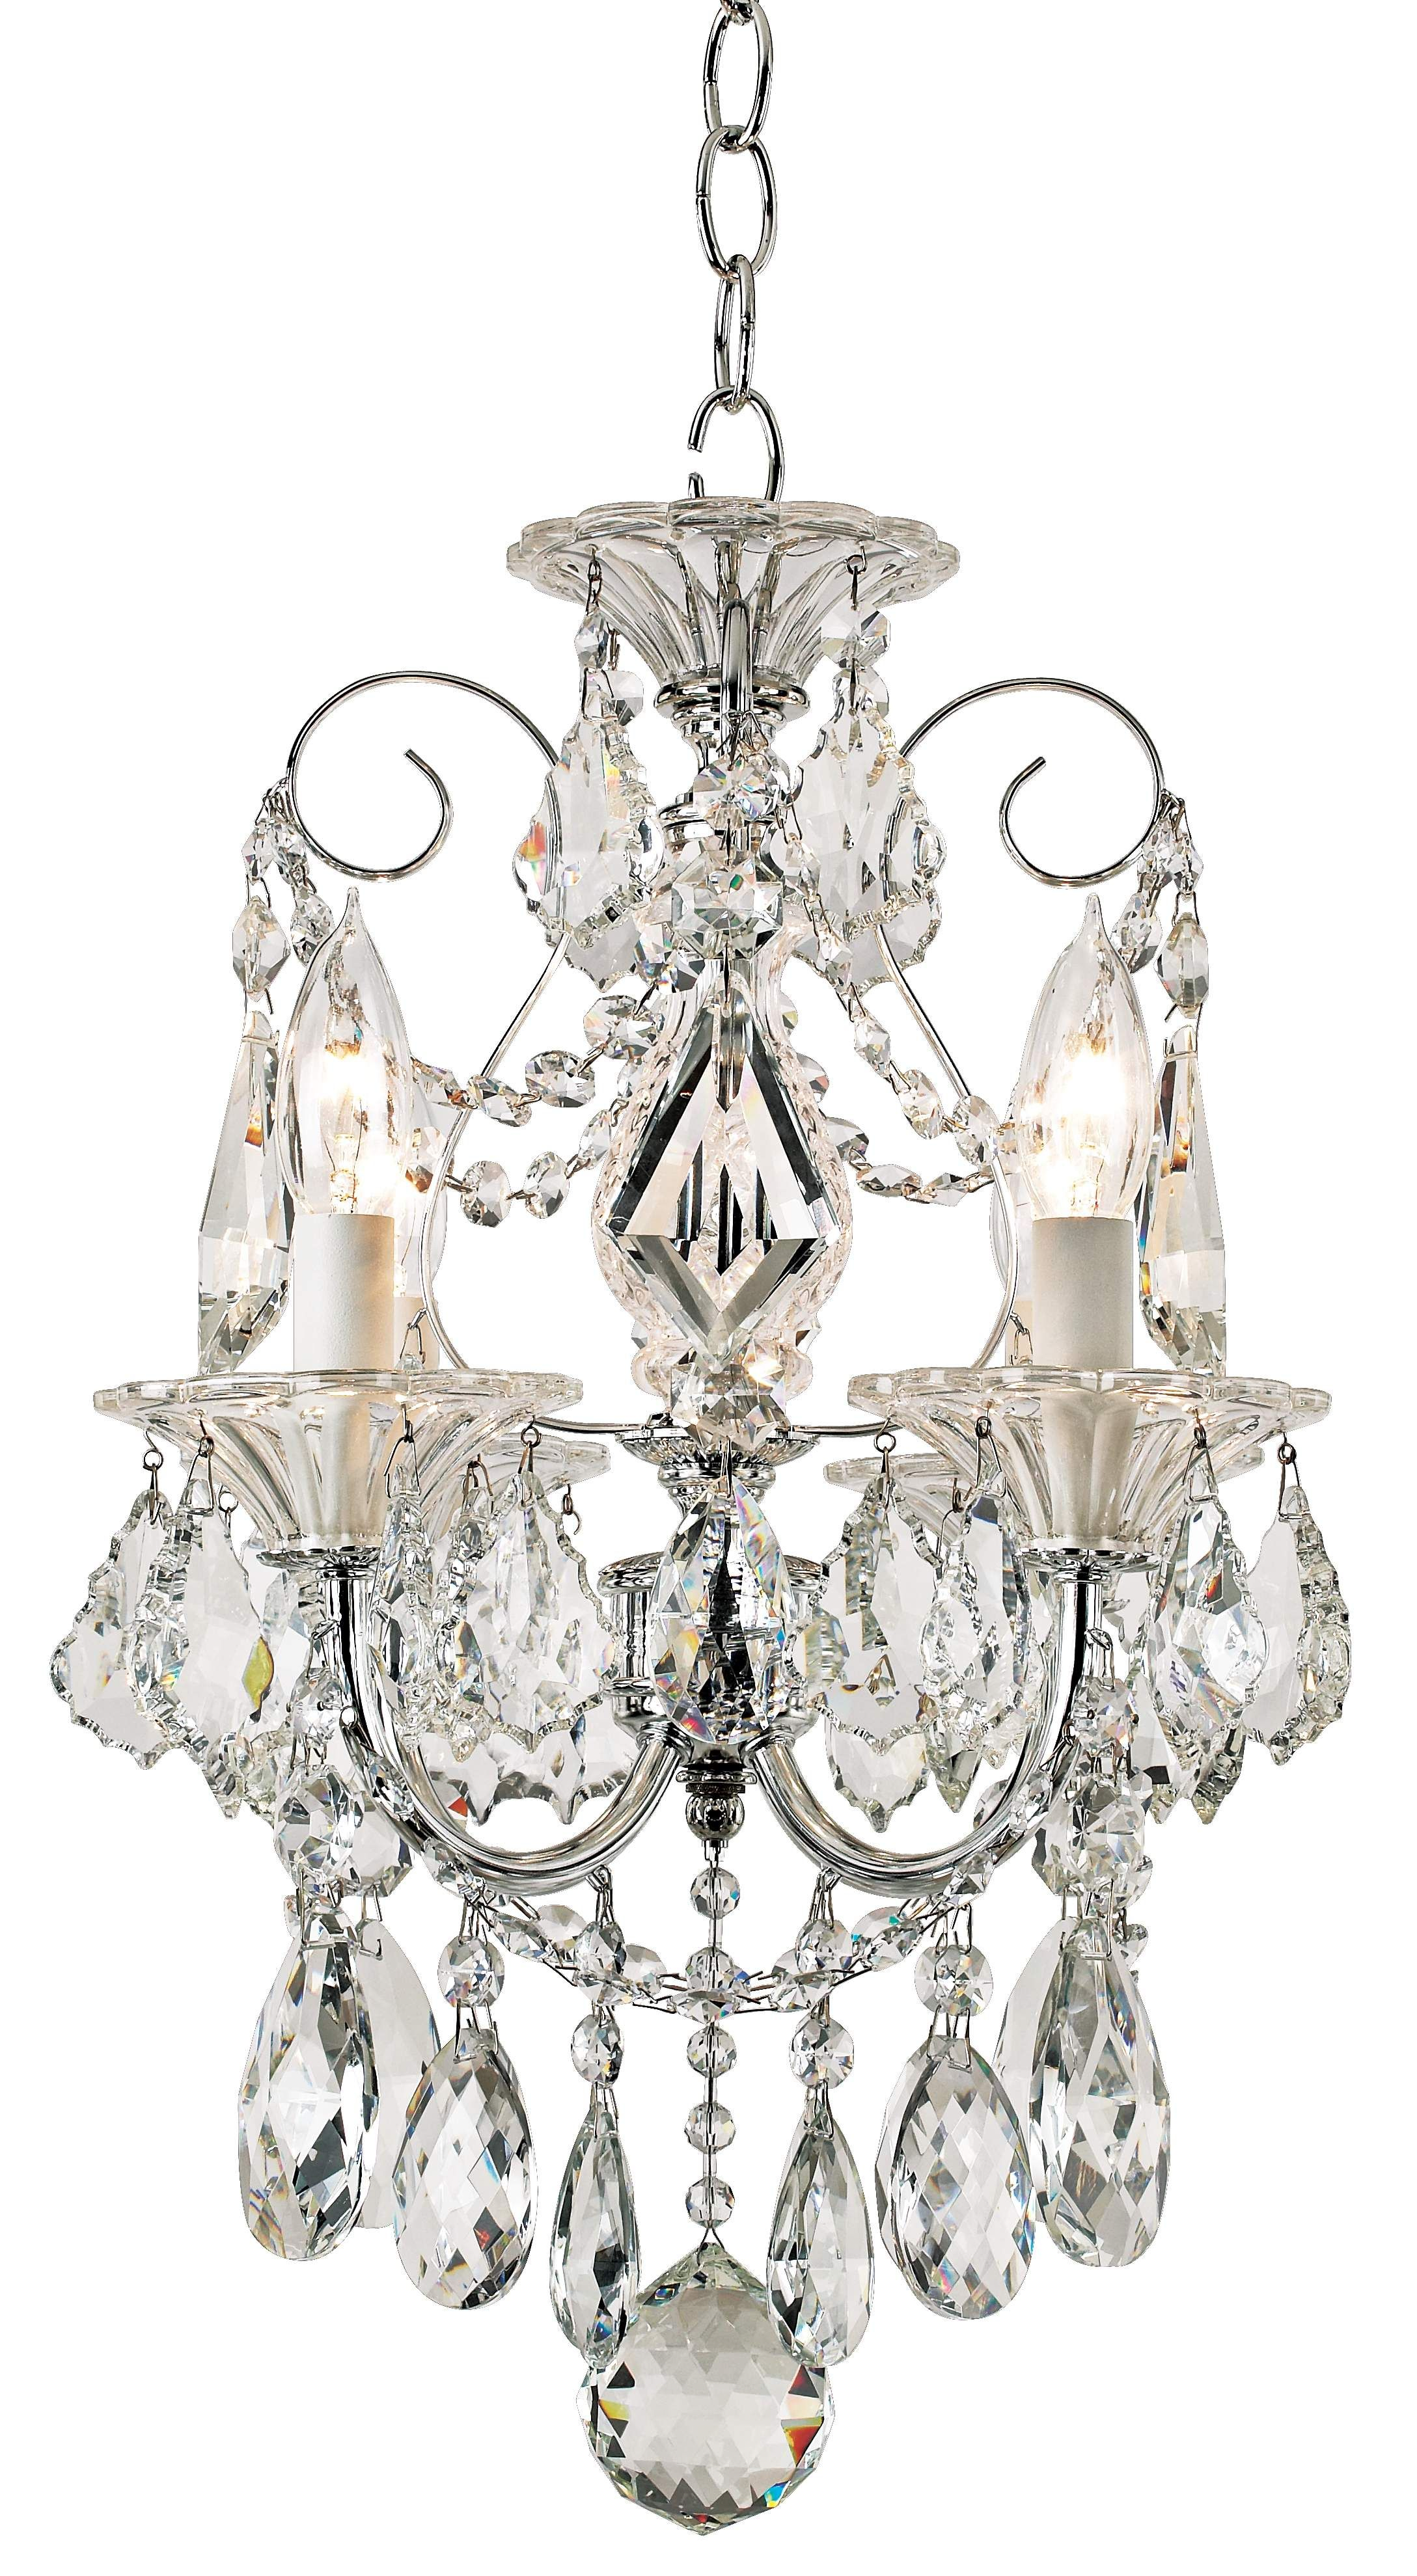 decorating chandelier sputnik arch home contemporary dinning designs ideas with trends interior closet design